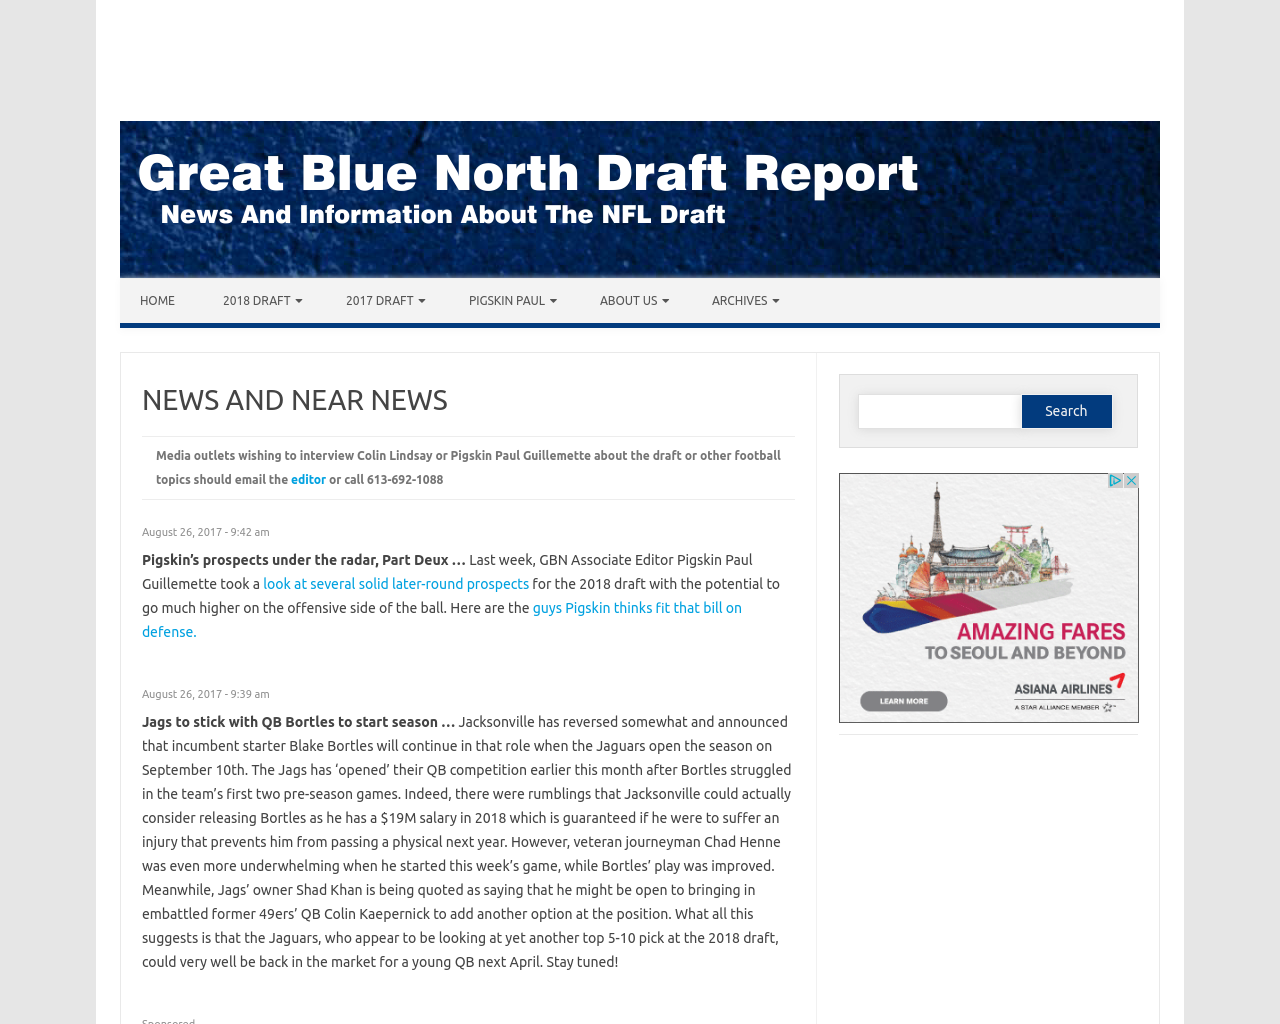 Great-Blue-North-Draft-Report-Advertising-Reviews-Pricing